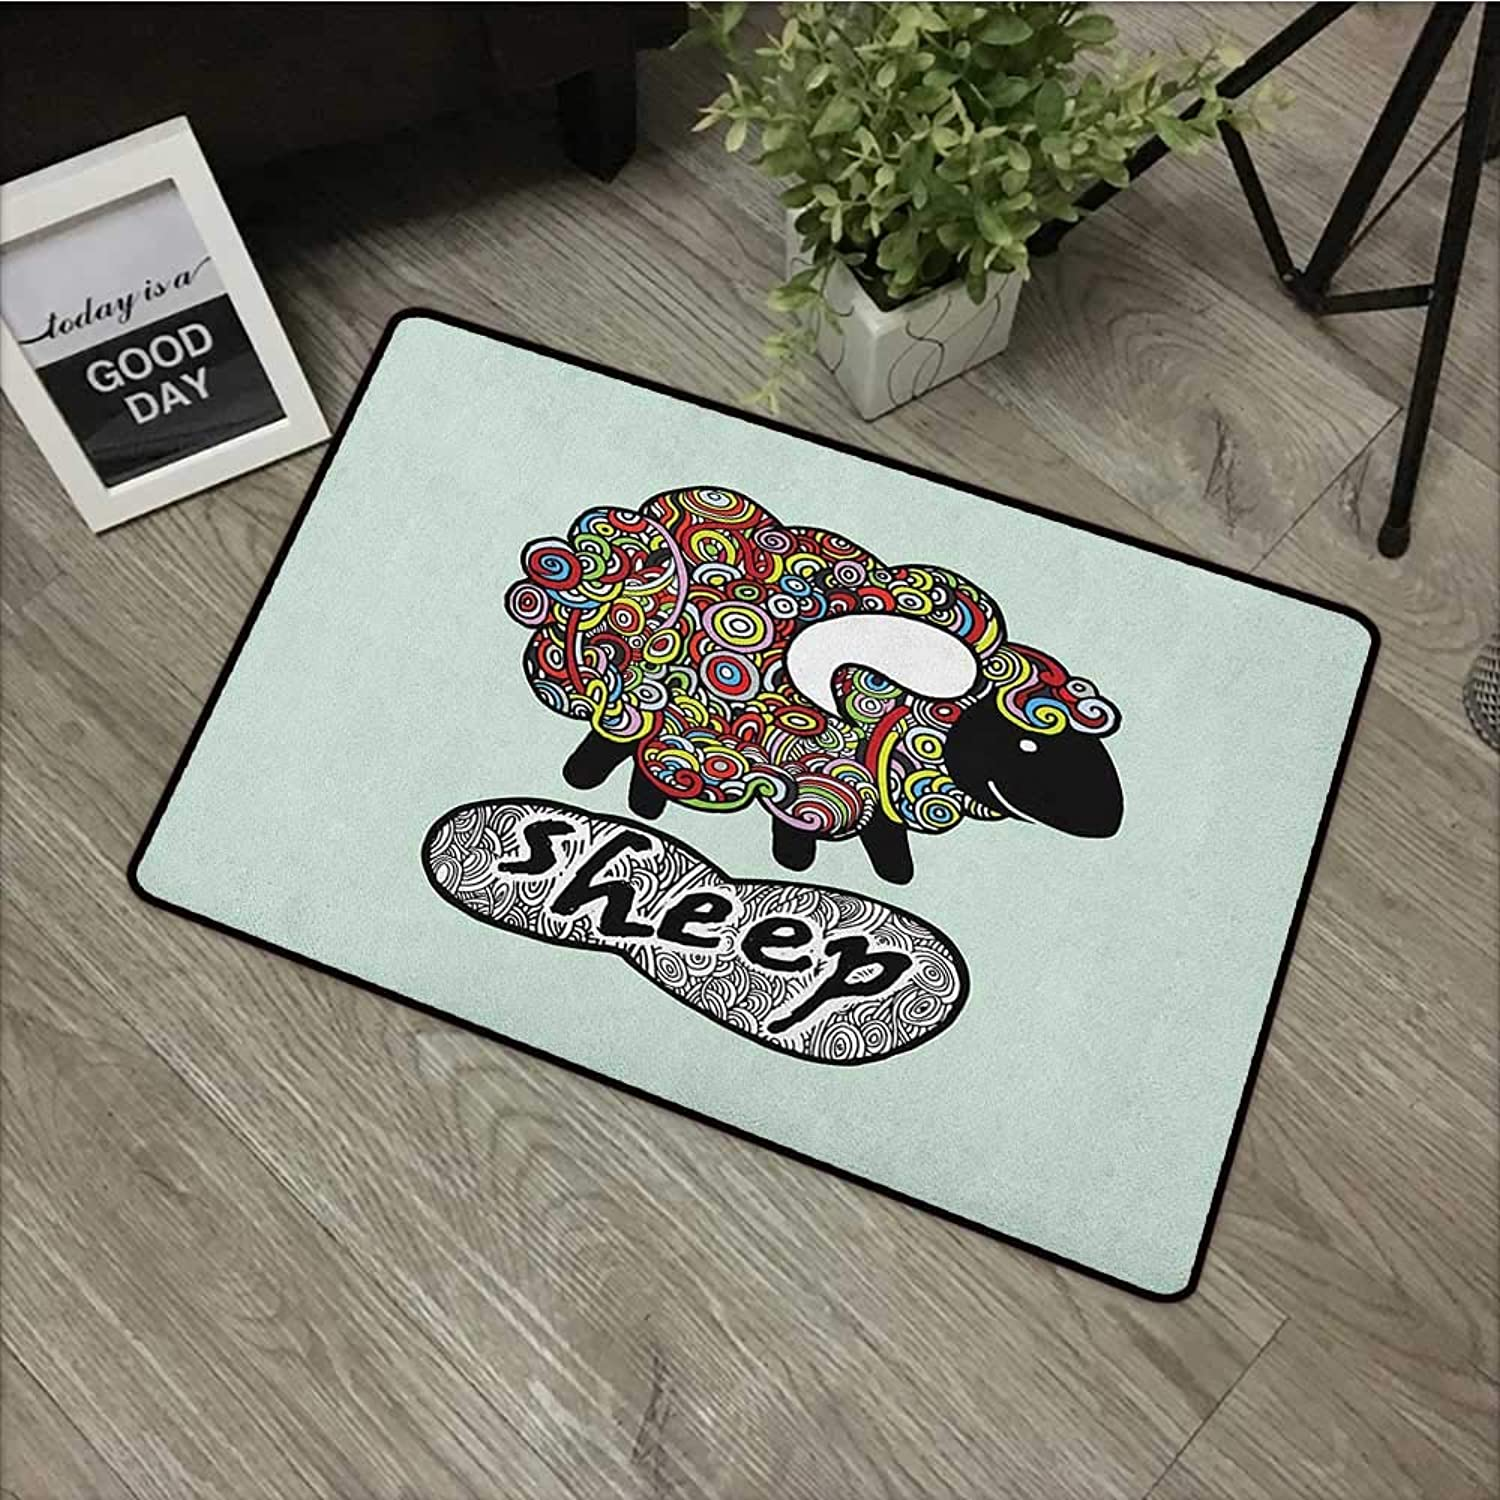 Pool Anti-Slip Door mat W35 x L59 INCH Indie,Hipster Doodle Funny Sheep with colorful Spiral Swirls Drawing Style Comic Country, Multicolor Non-Slip, with Non-Slip Backing,Non-Slip Door Mat Carpet